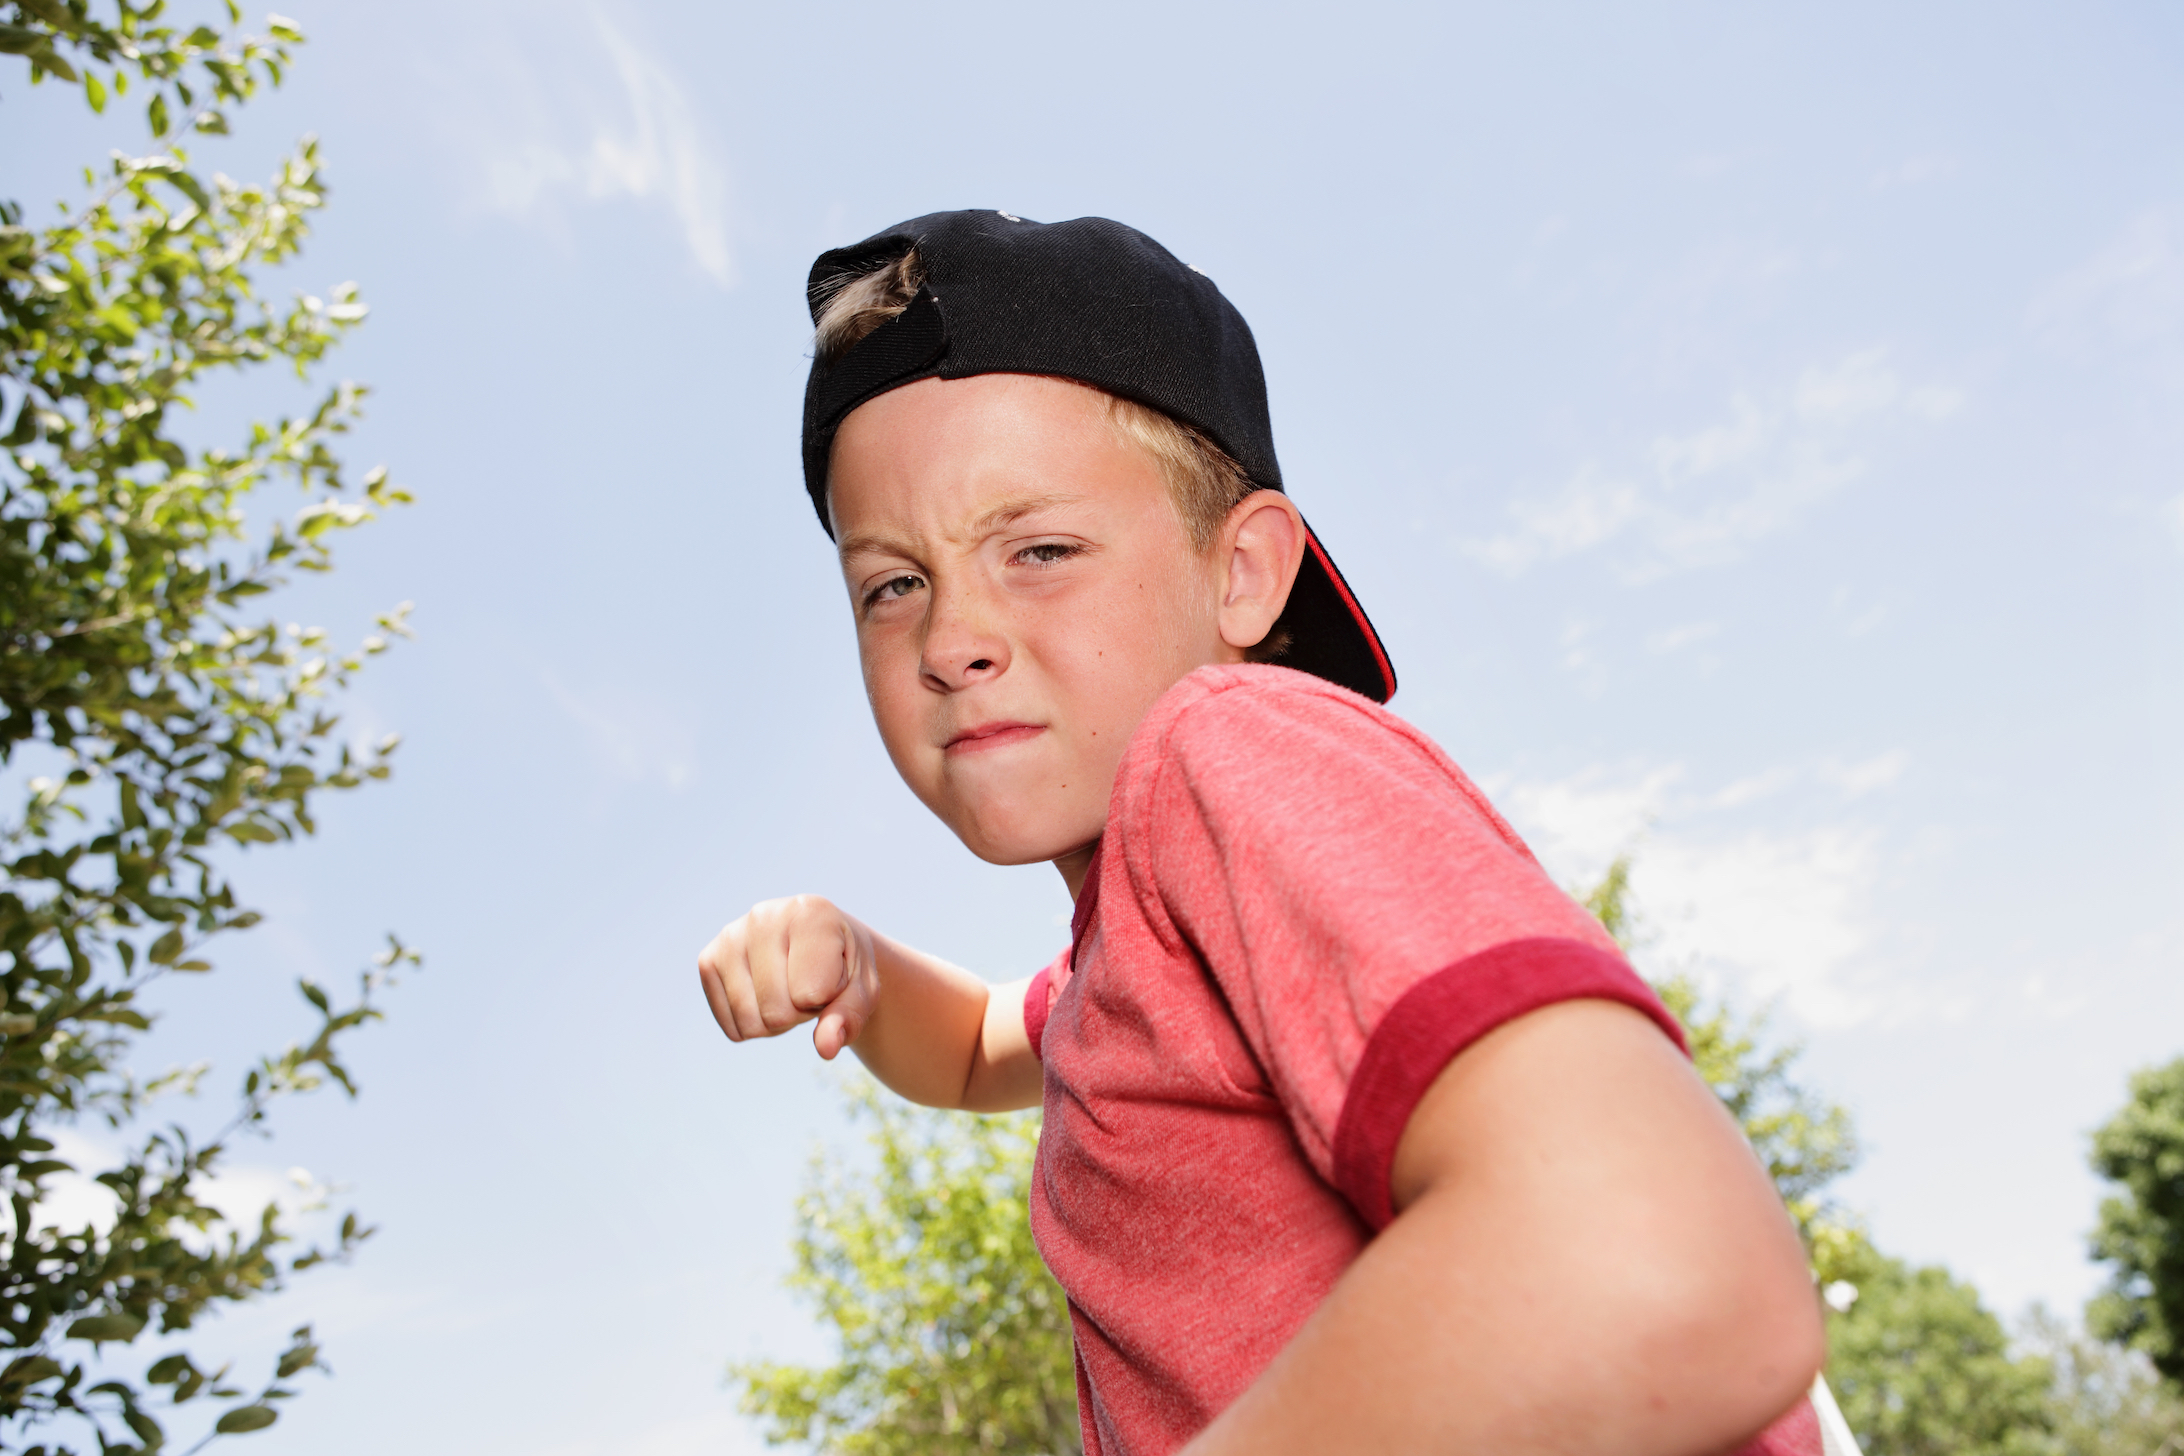 Factors contributing to the emergence of aggressive behavior in children